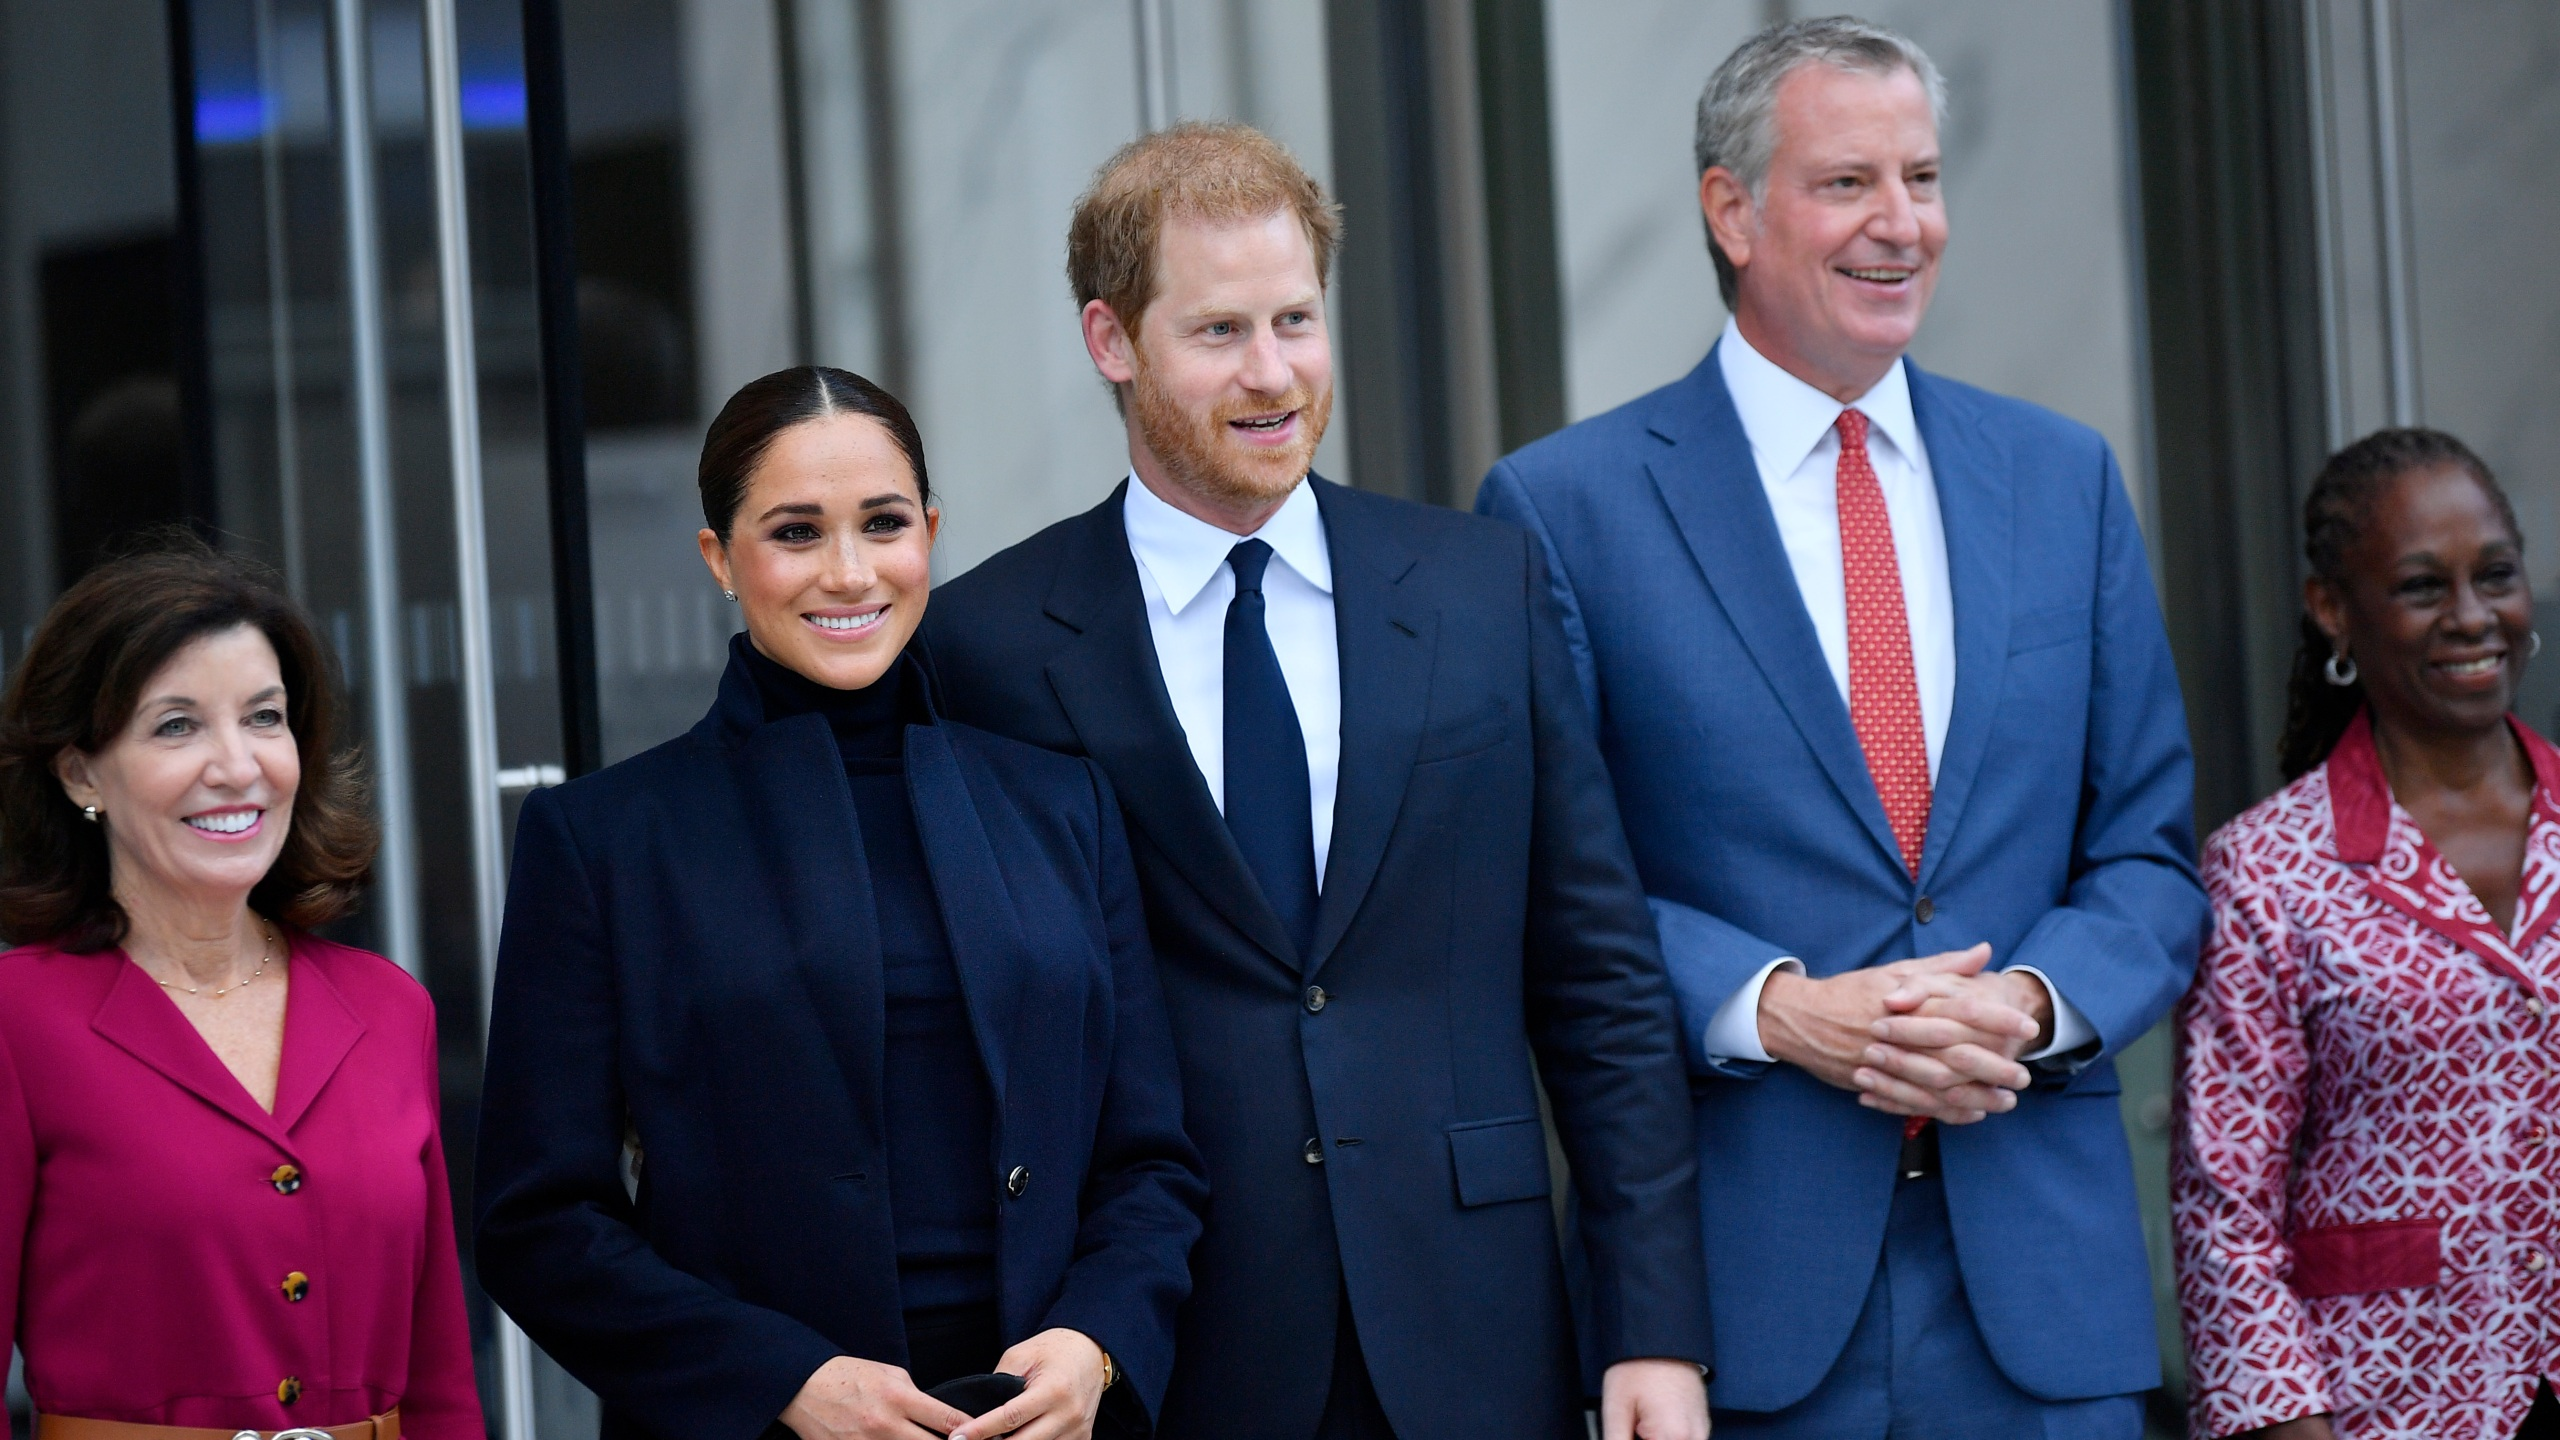 Meghan Markle and Prince Harry at One World Trade Center in NYC